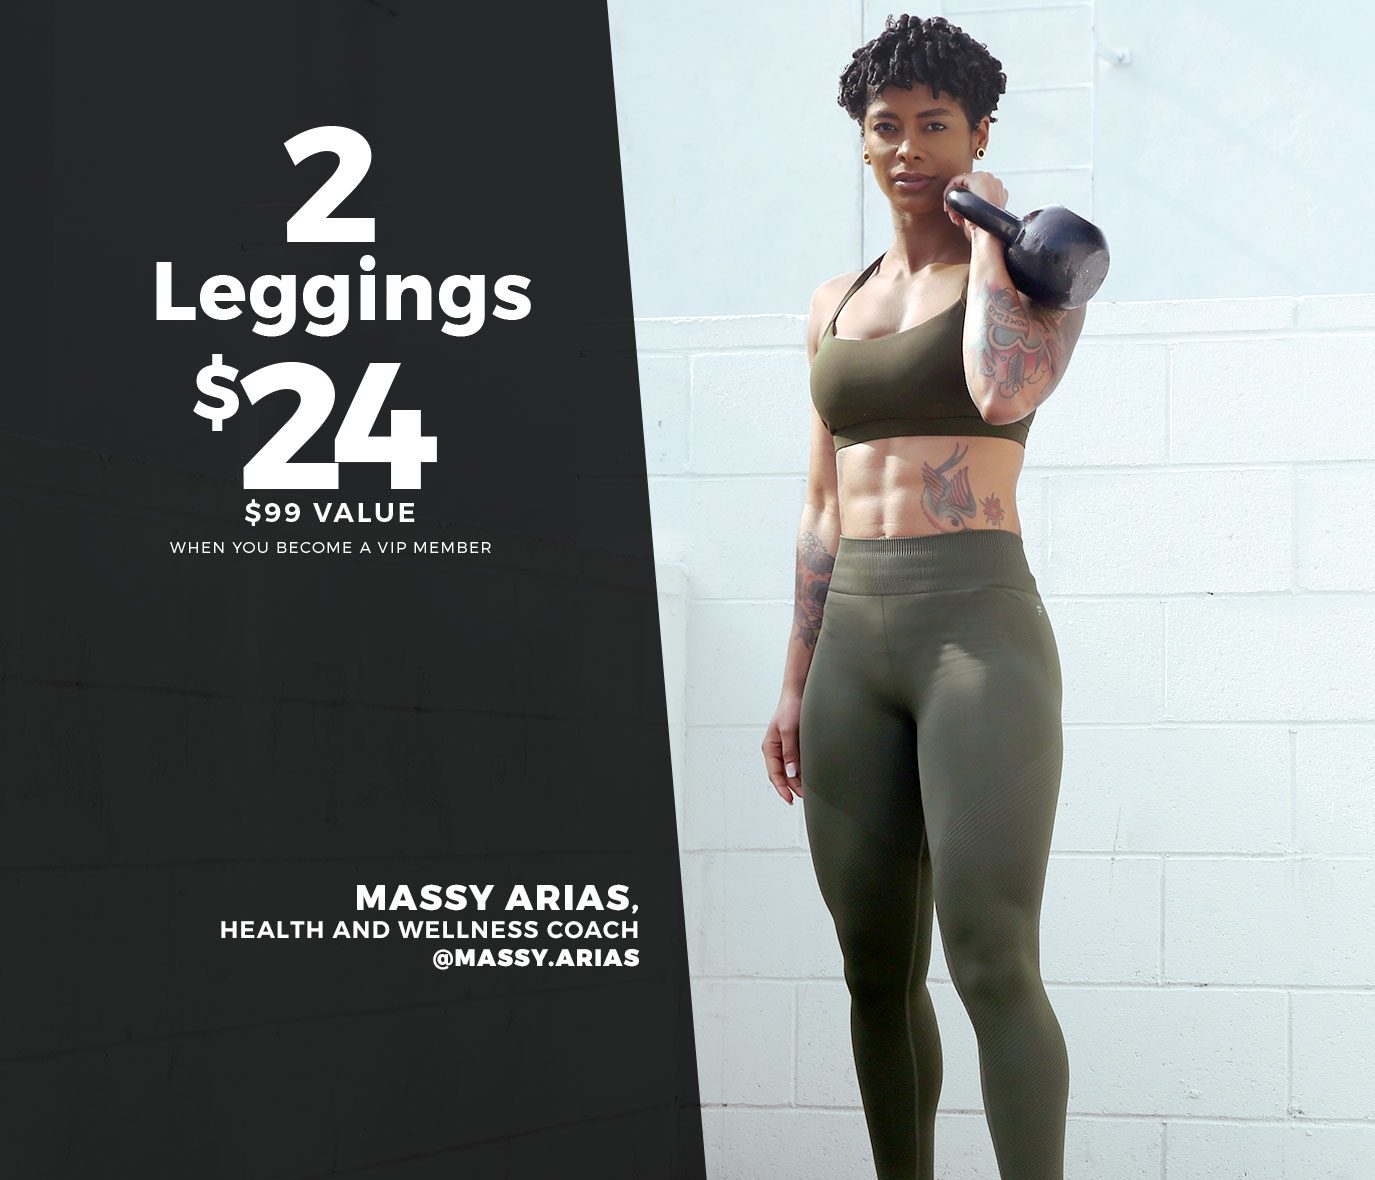 2 Leggings For $24 | Massy Arias - Celebrity Trainer